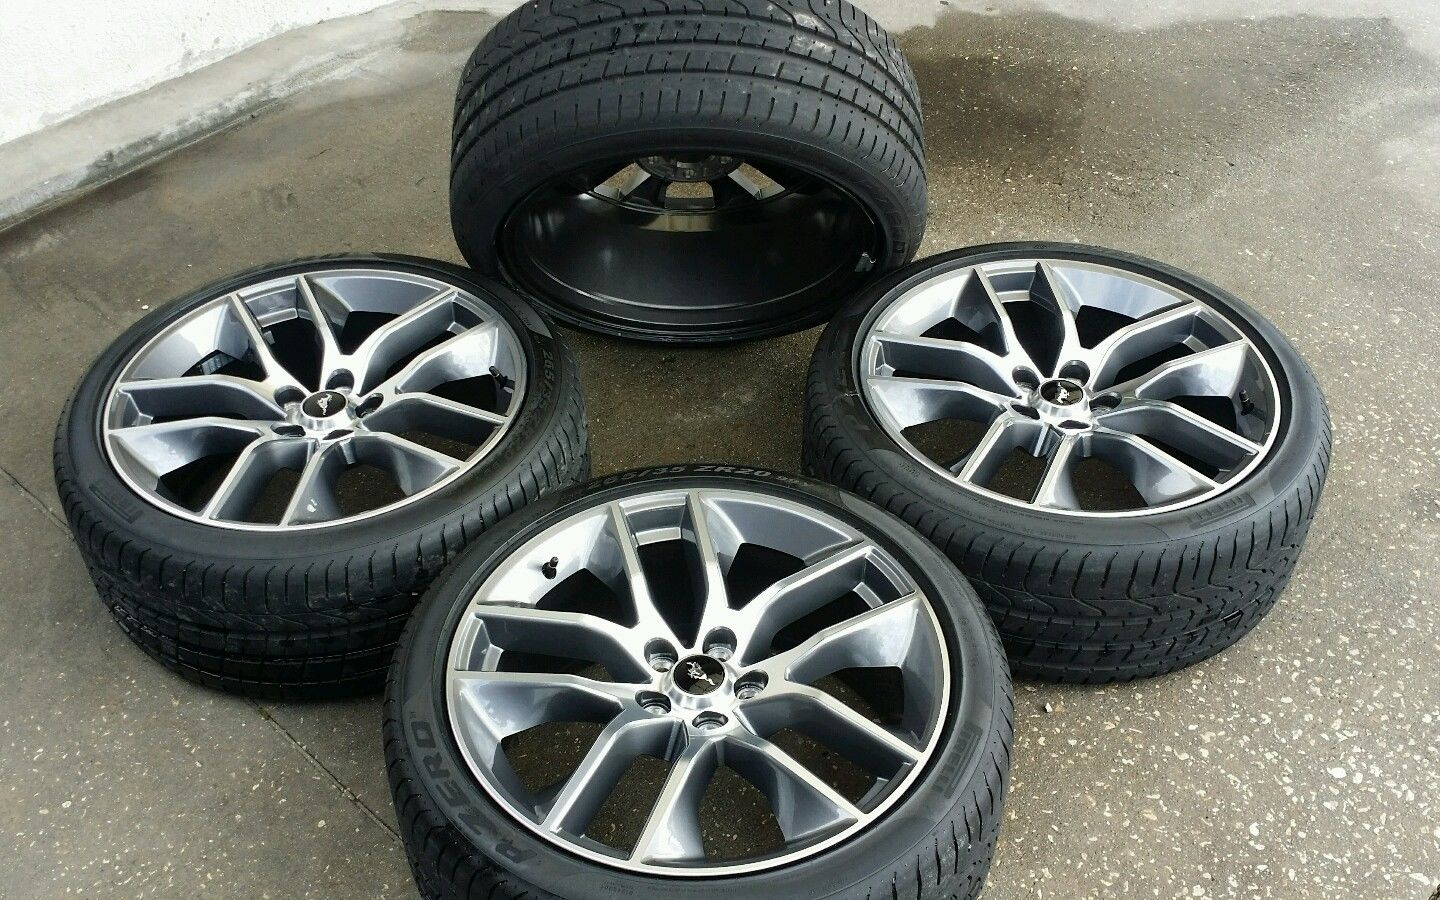 Oem  Ford Mustang Gt Wheels And Tires New Take Offs Factory Rims